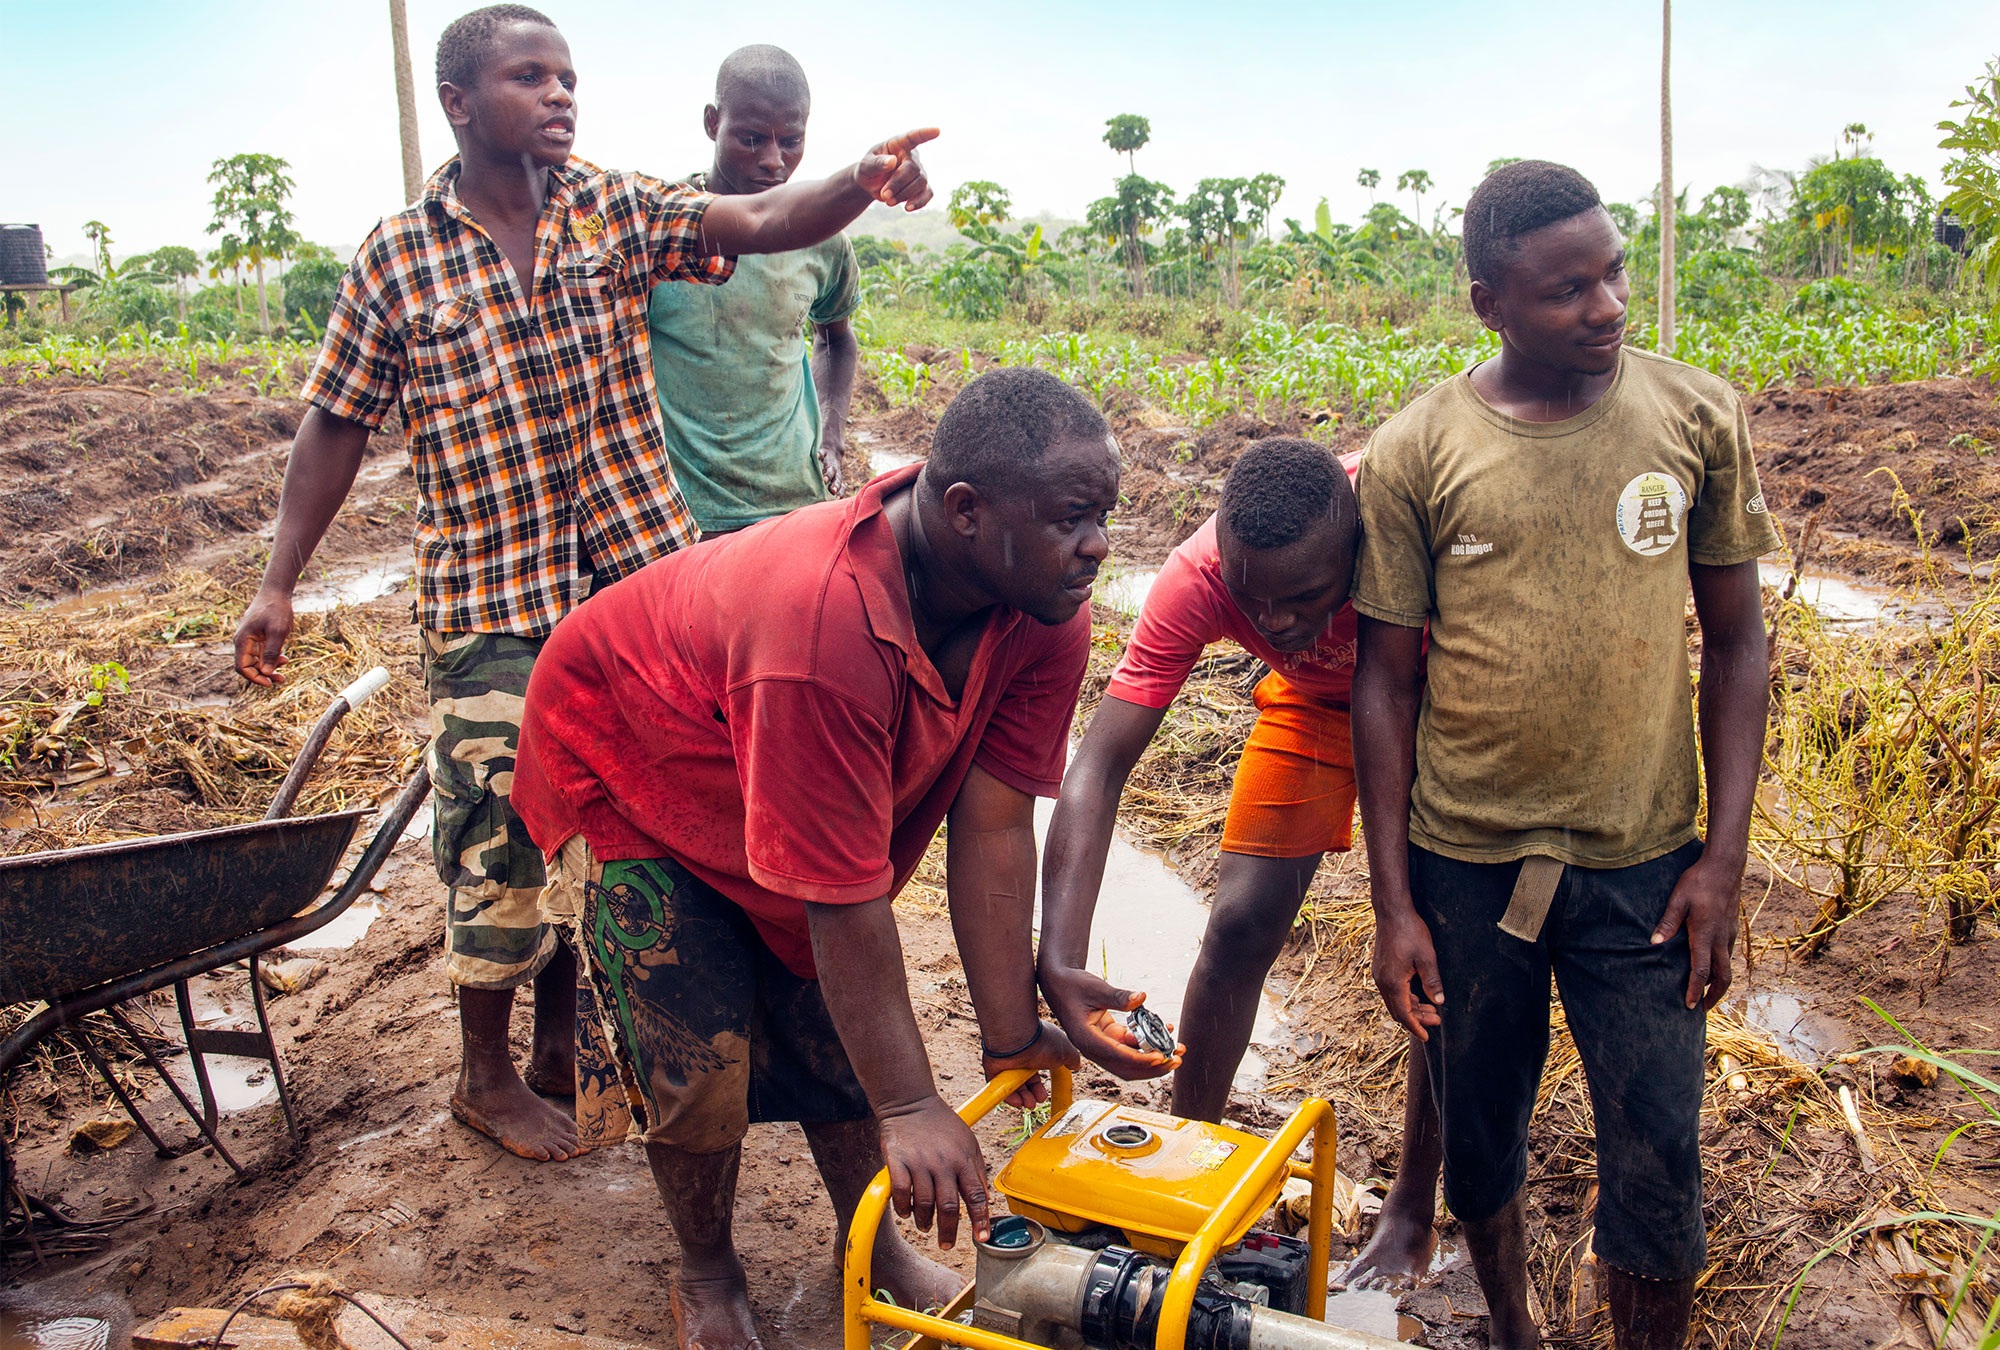 Five men stand in a field in the rain operating a small pump machine